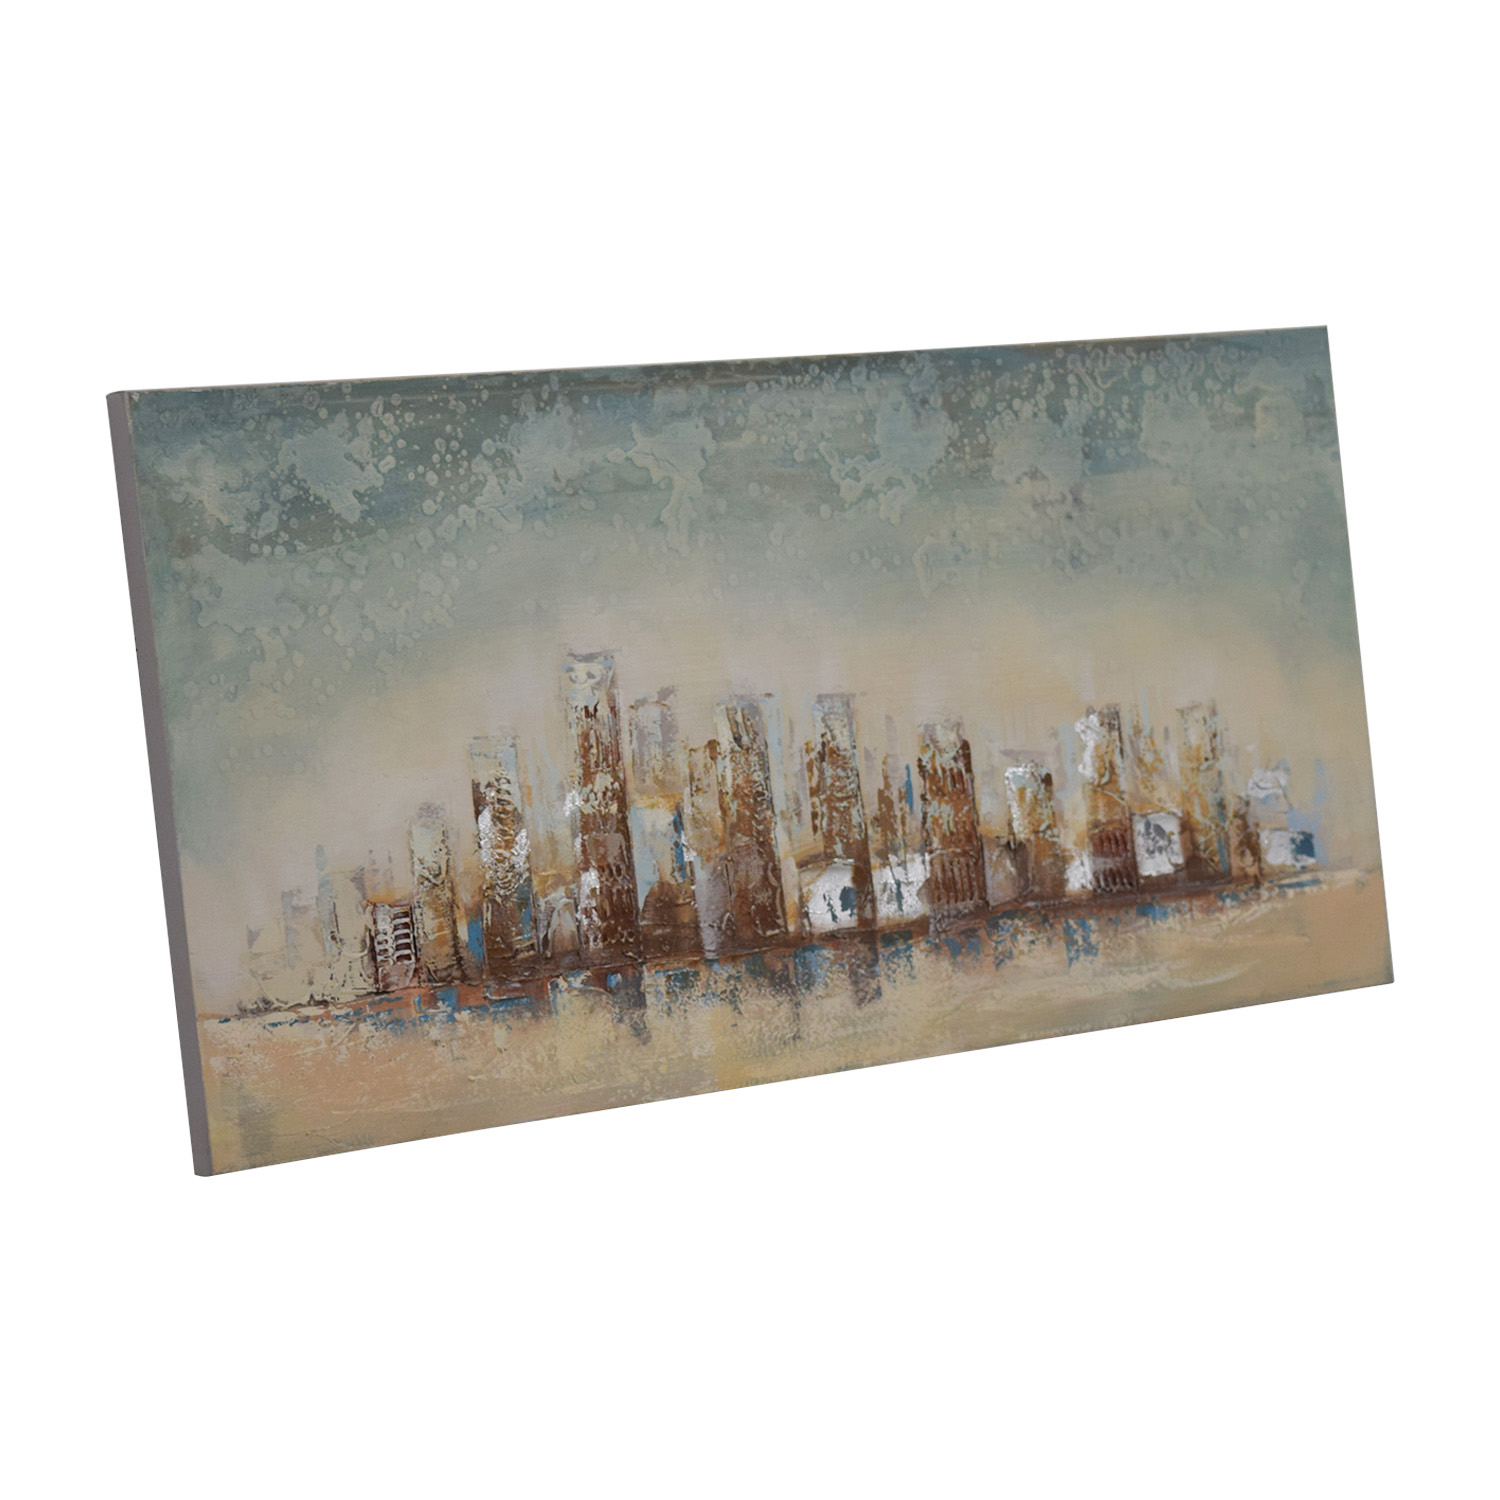 buy Pier 1 Imports Skyline Wood Framed Painting Pier 1 Imports Wall Art